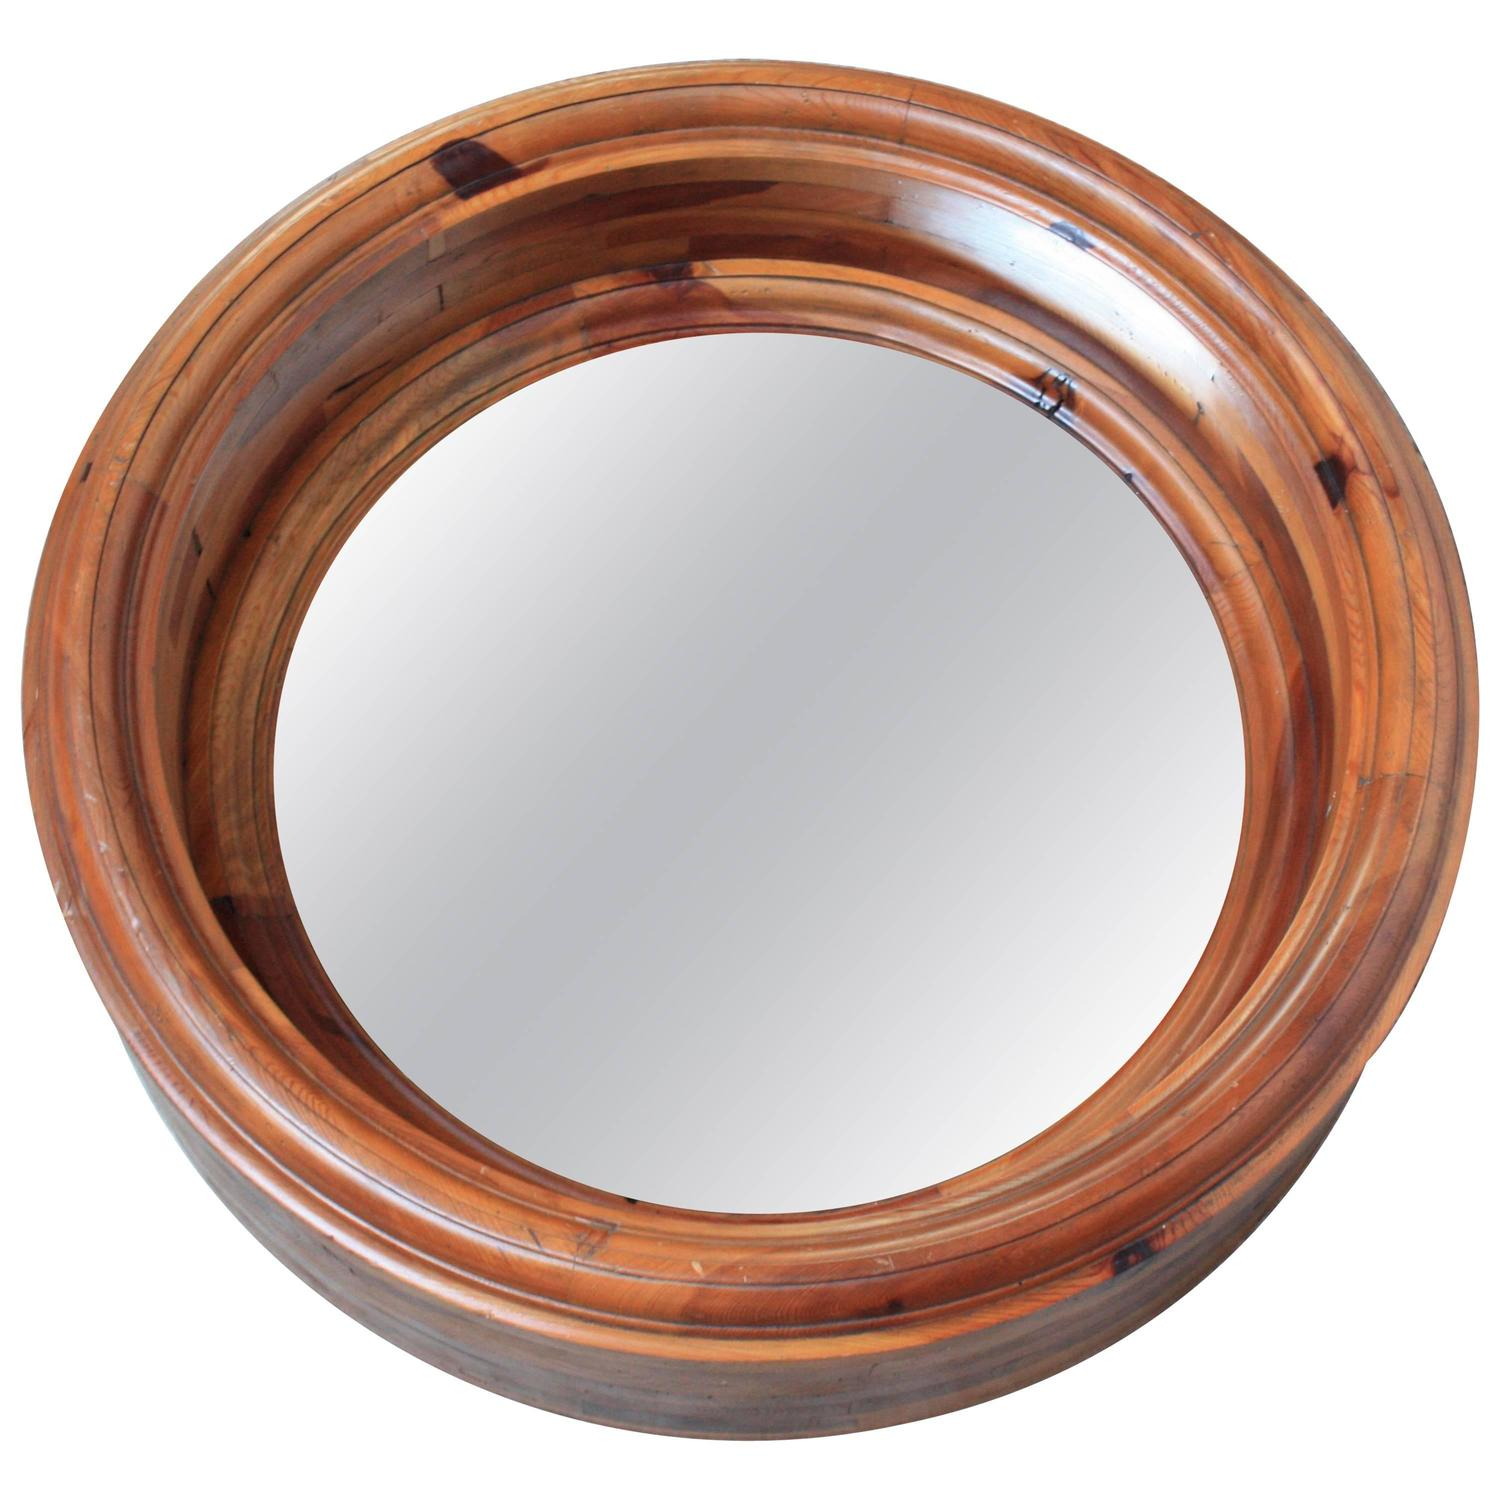 Large wooden porthole mirror by ralph lauren for sale at Large wooden mirrors for sale